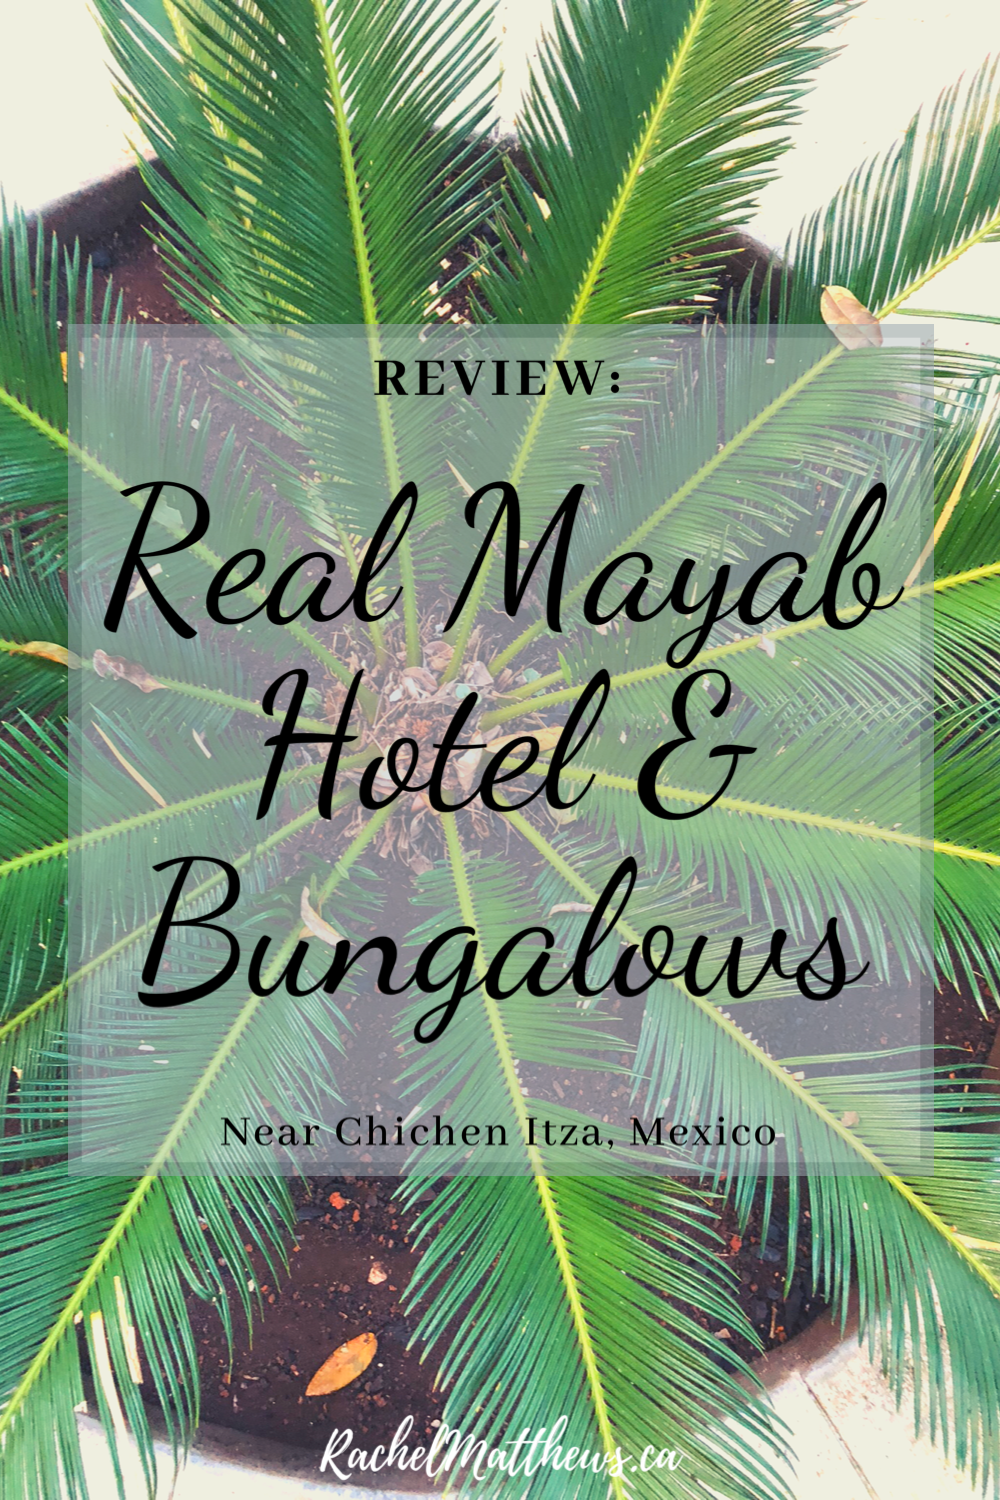 My review of Real Mayab Hotel & Bungalows close to Chichen Itza, Mexico!